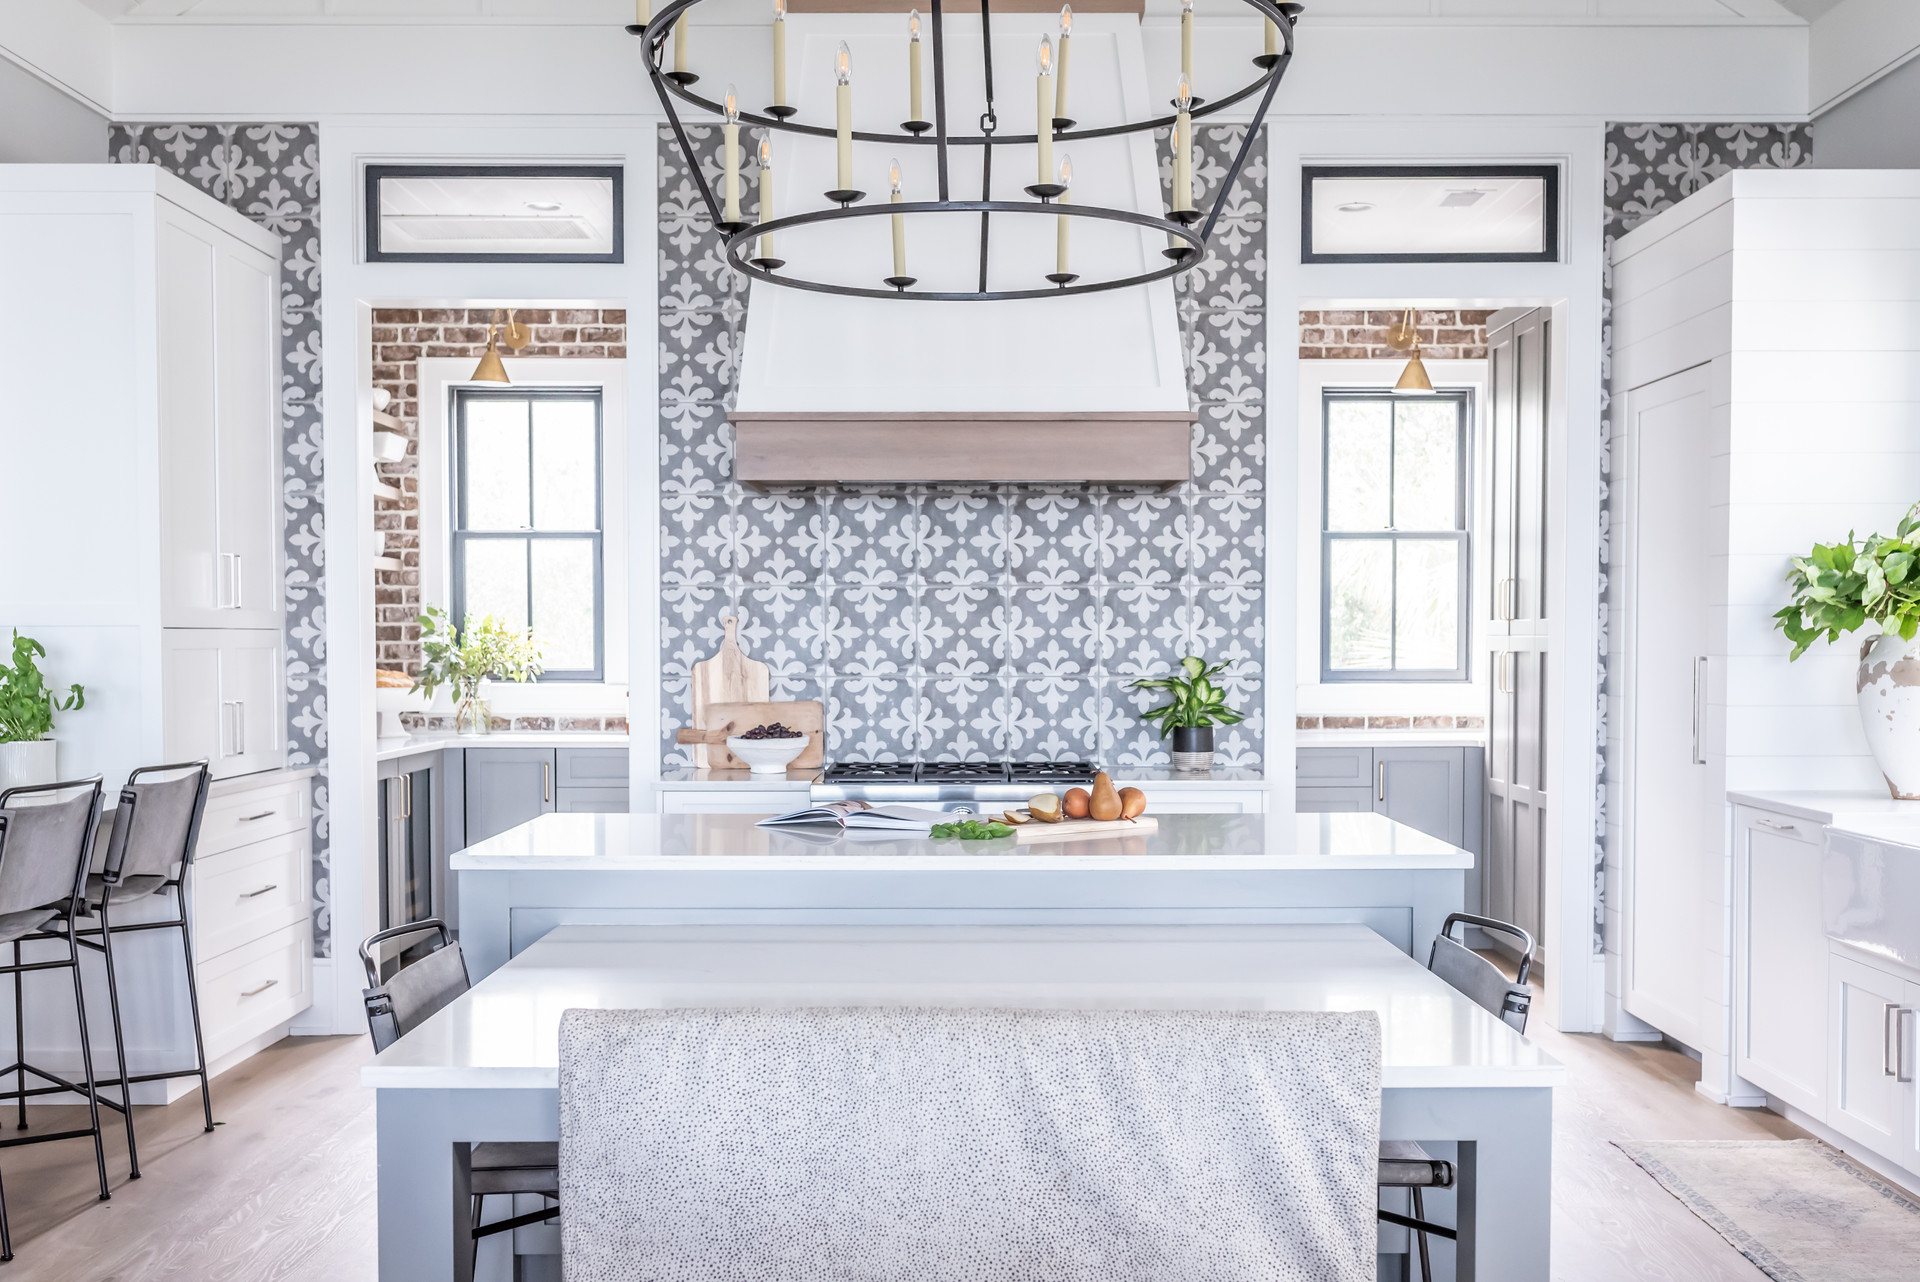 ADC-May1-2019-Kitchen-11.jpg